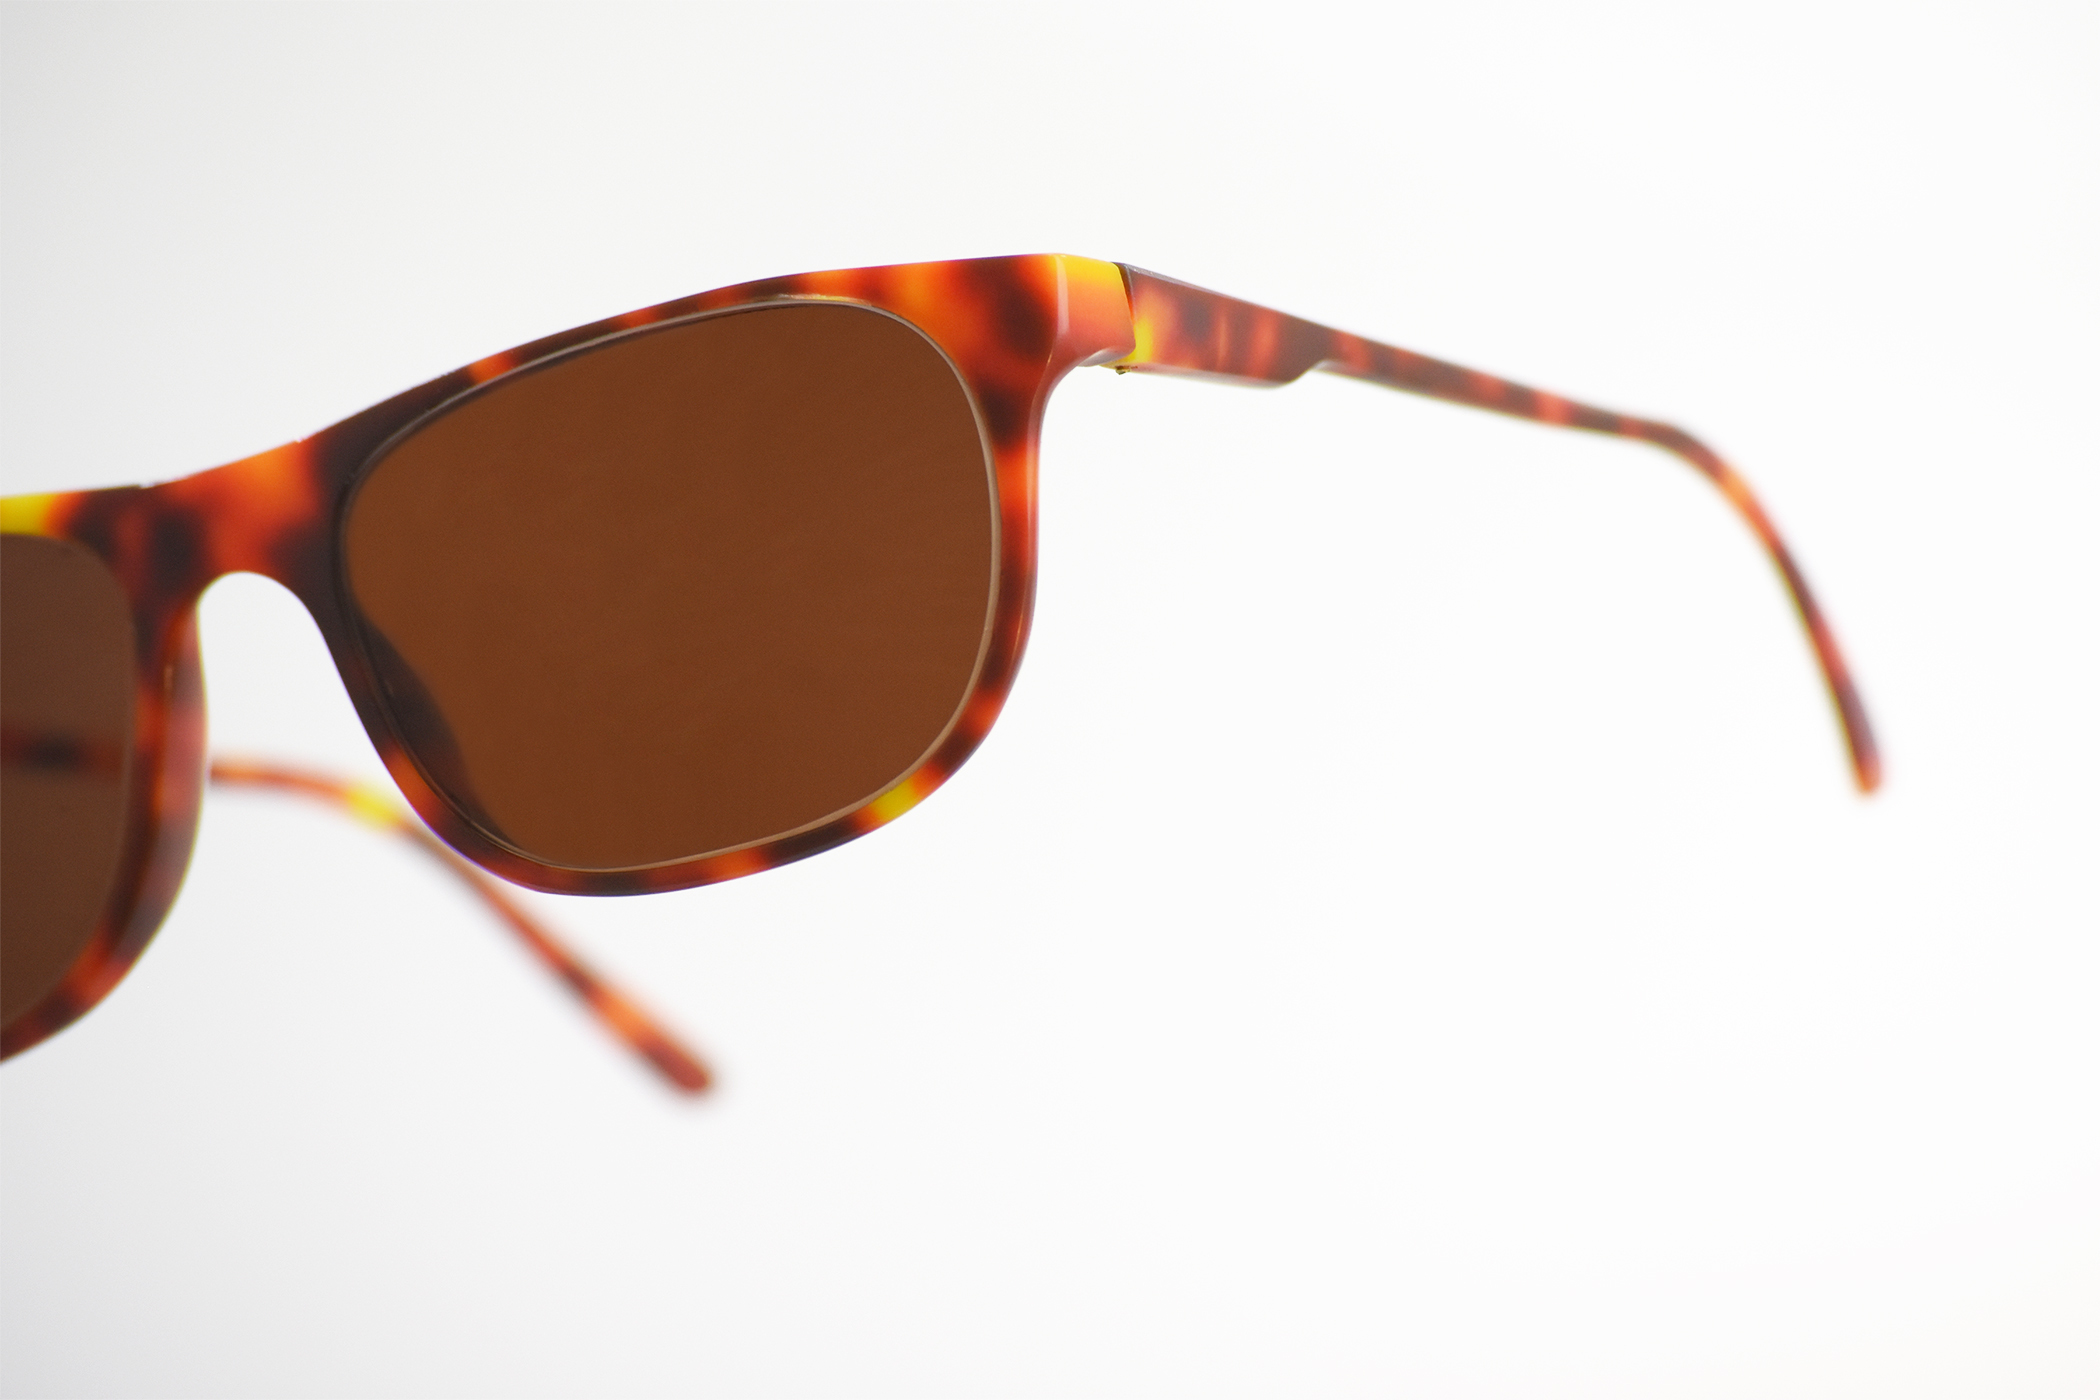 New Stratasys 3D Printing Solution for Eyewear Aims to Get Frames to ...